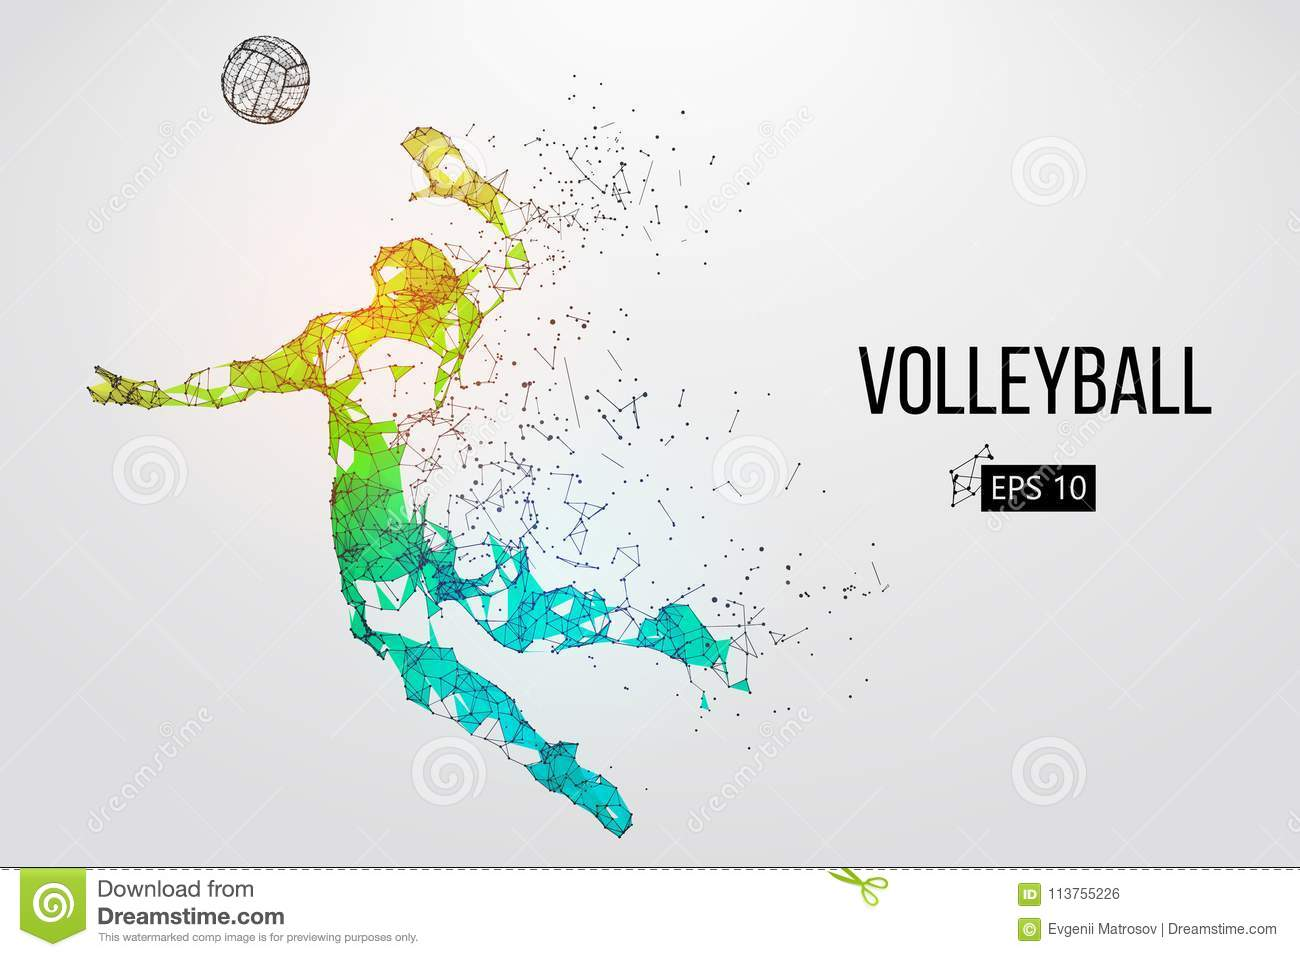 Abstract Triangle Volleyball Player Silhouette Stock: Volleyball Cartoons, Illustrations & Vector Stock Images